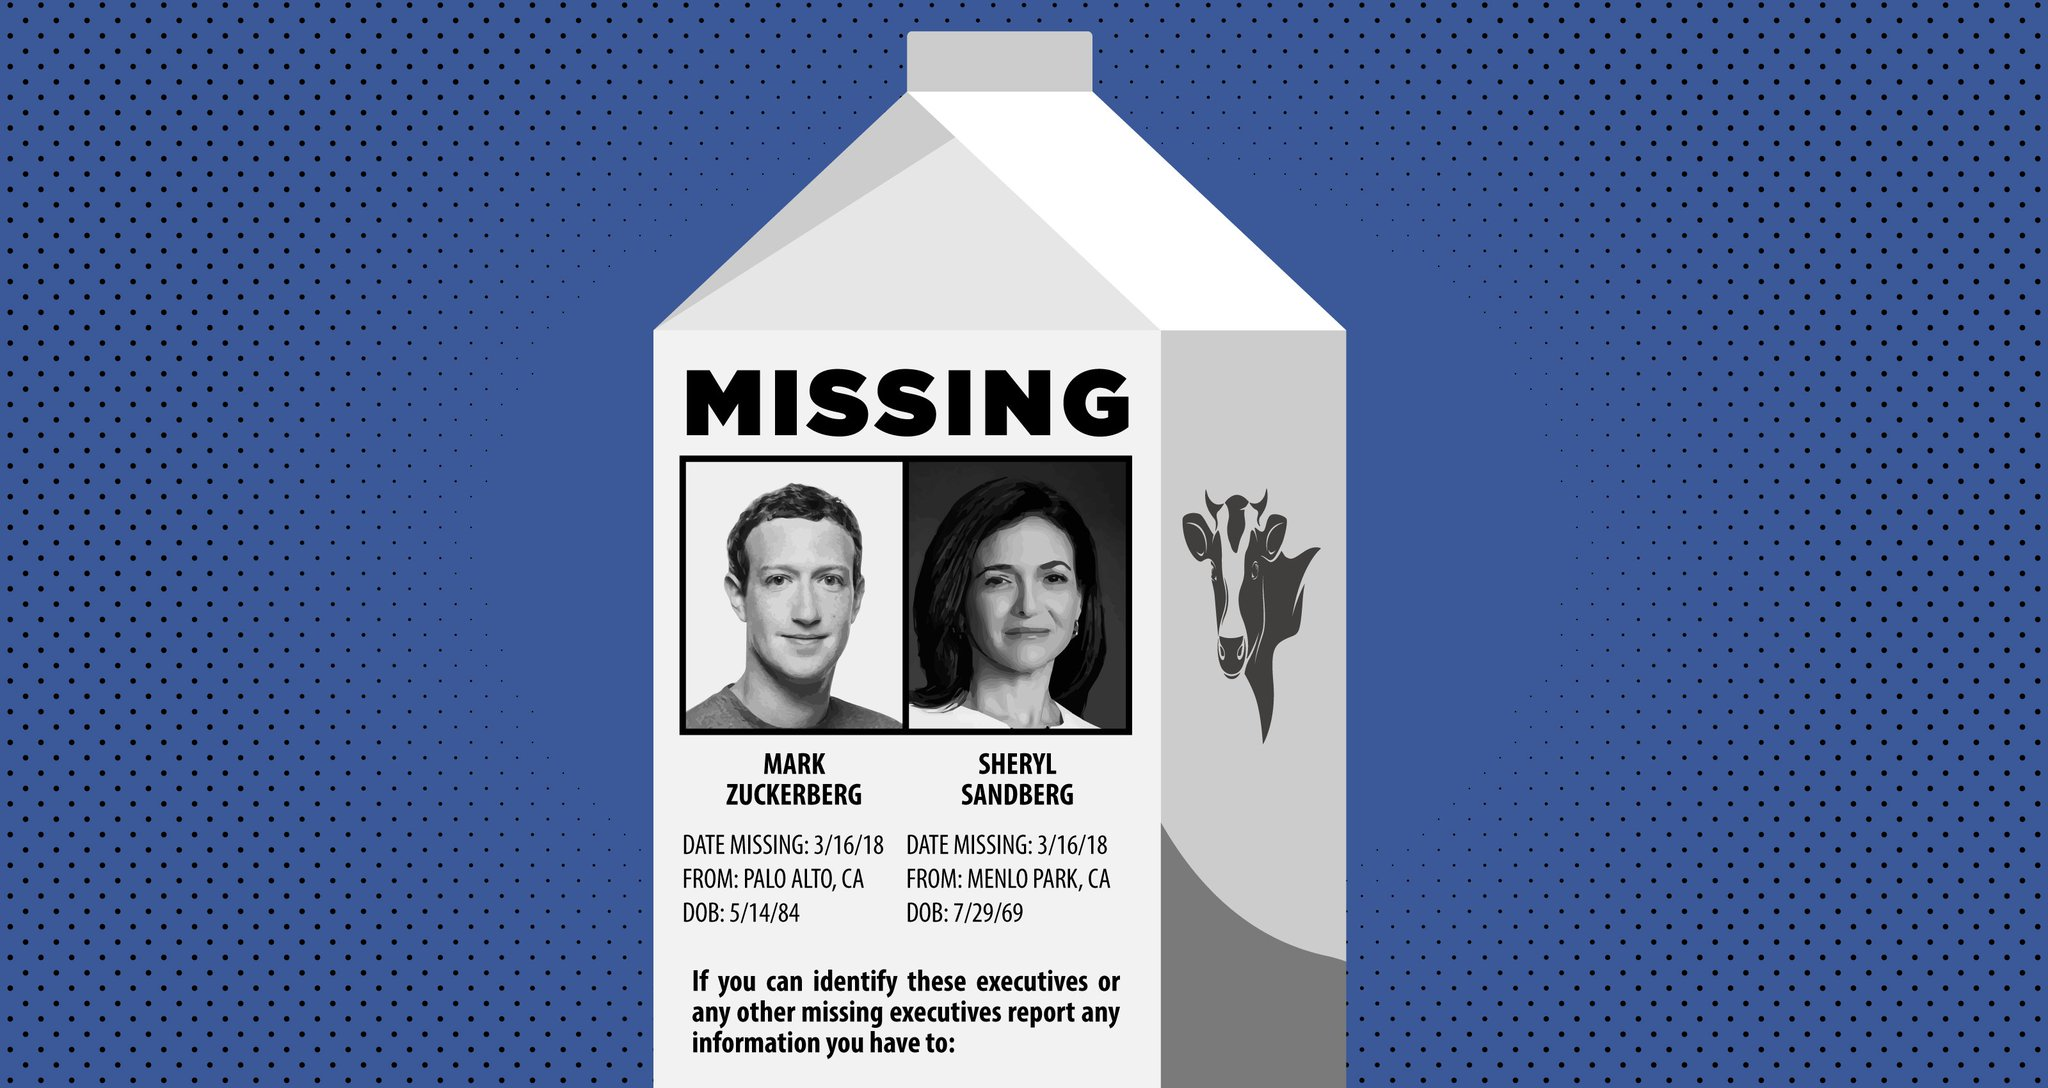 Zuck and Sandberg go M.I.A. as Congress summons Facebook leadership by name https://t.co/YuWERneCYj https://t.co/5DIB1VzQCe